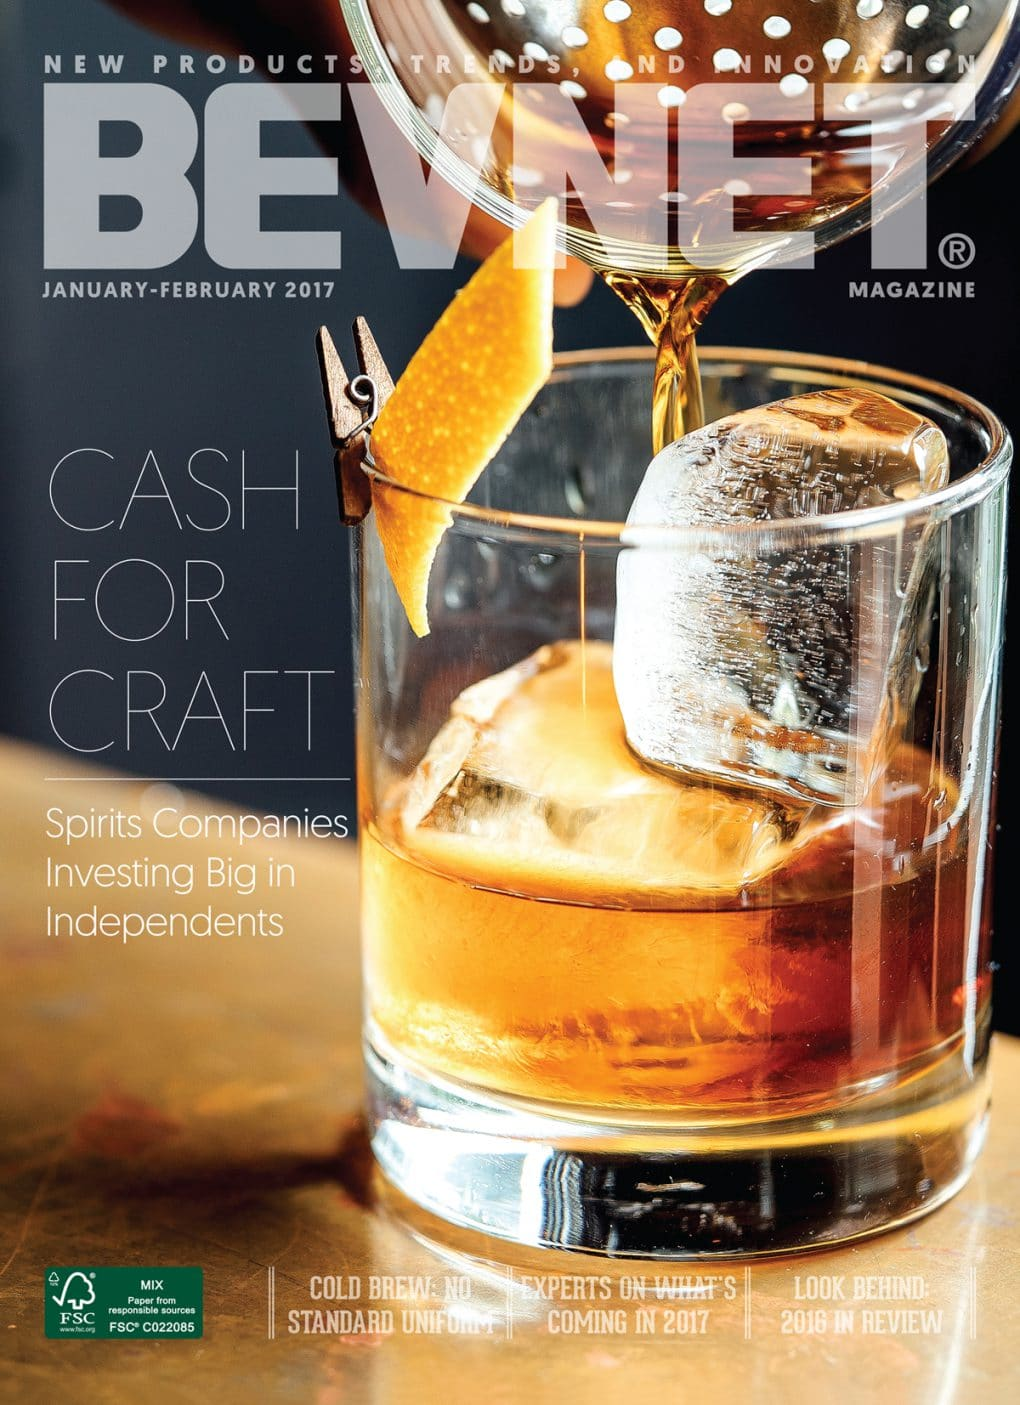 Cash for Craft: Spirit Companies Invest in Independents